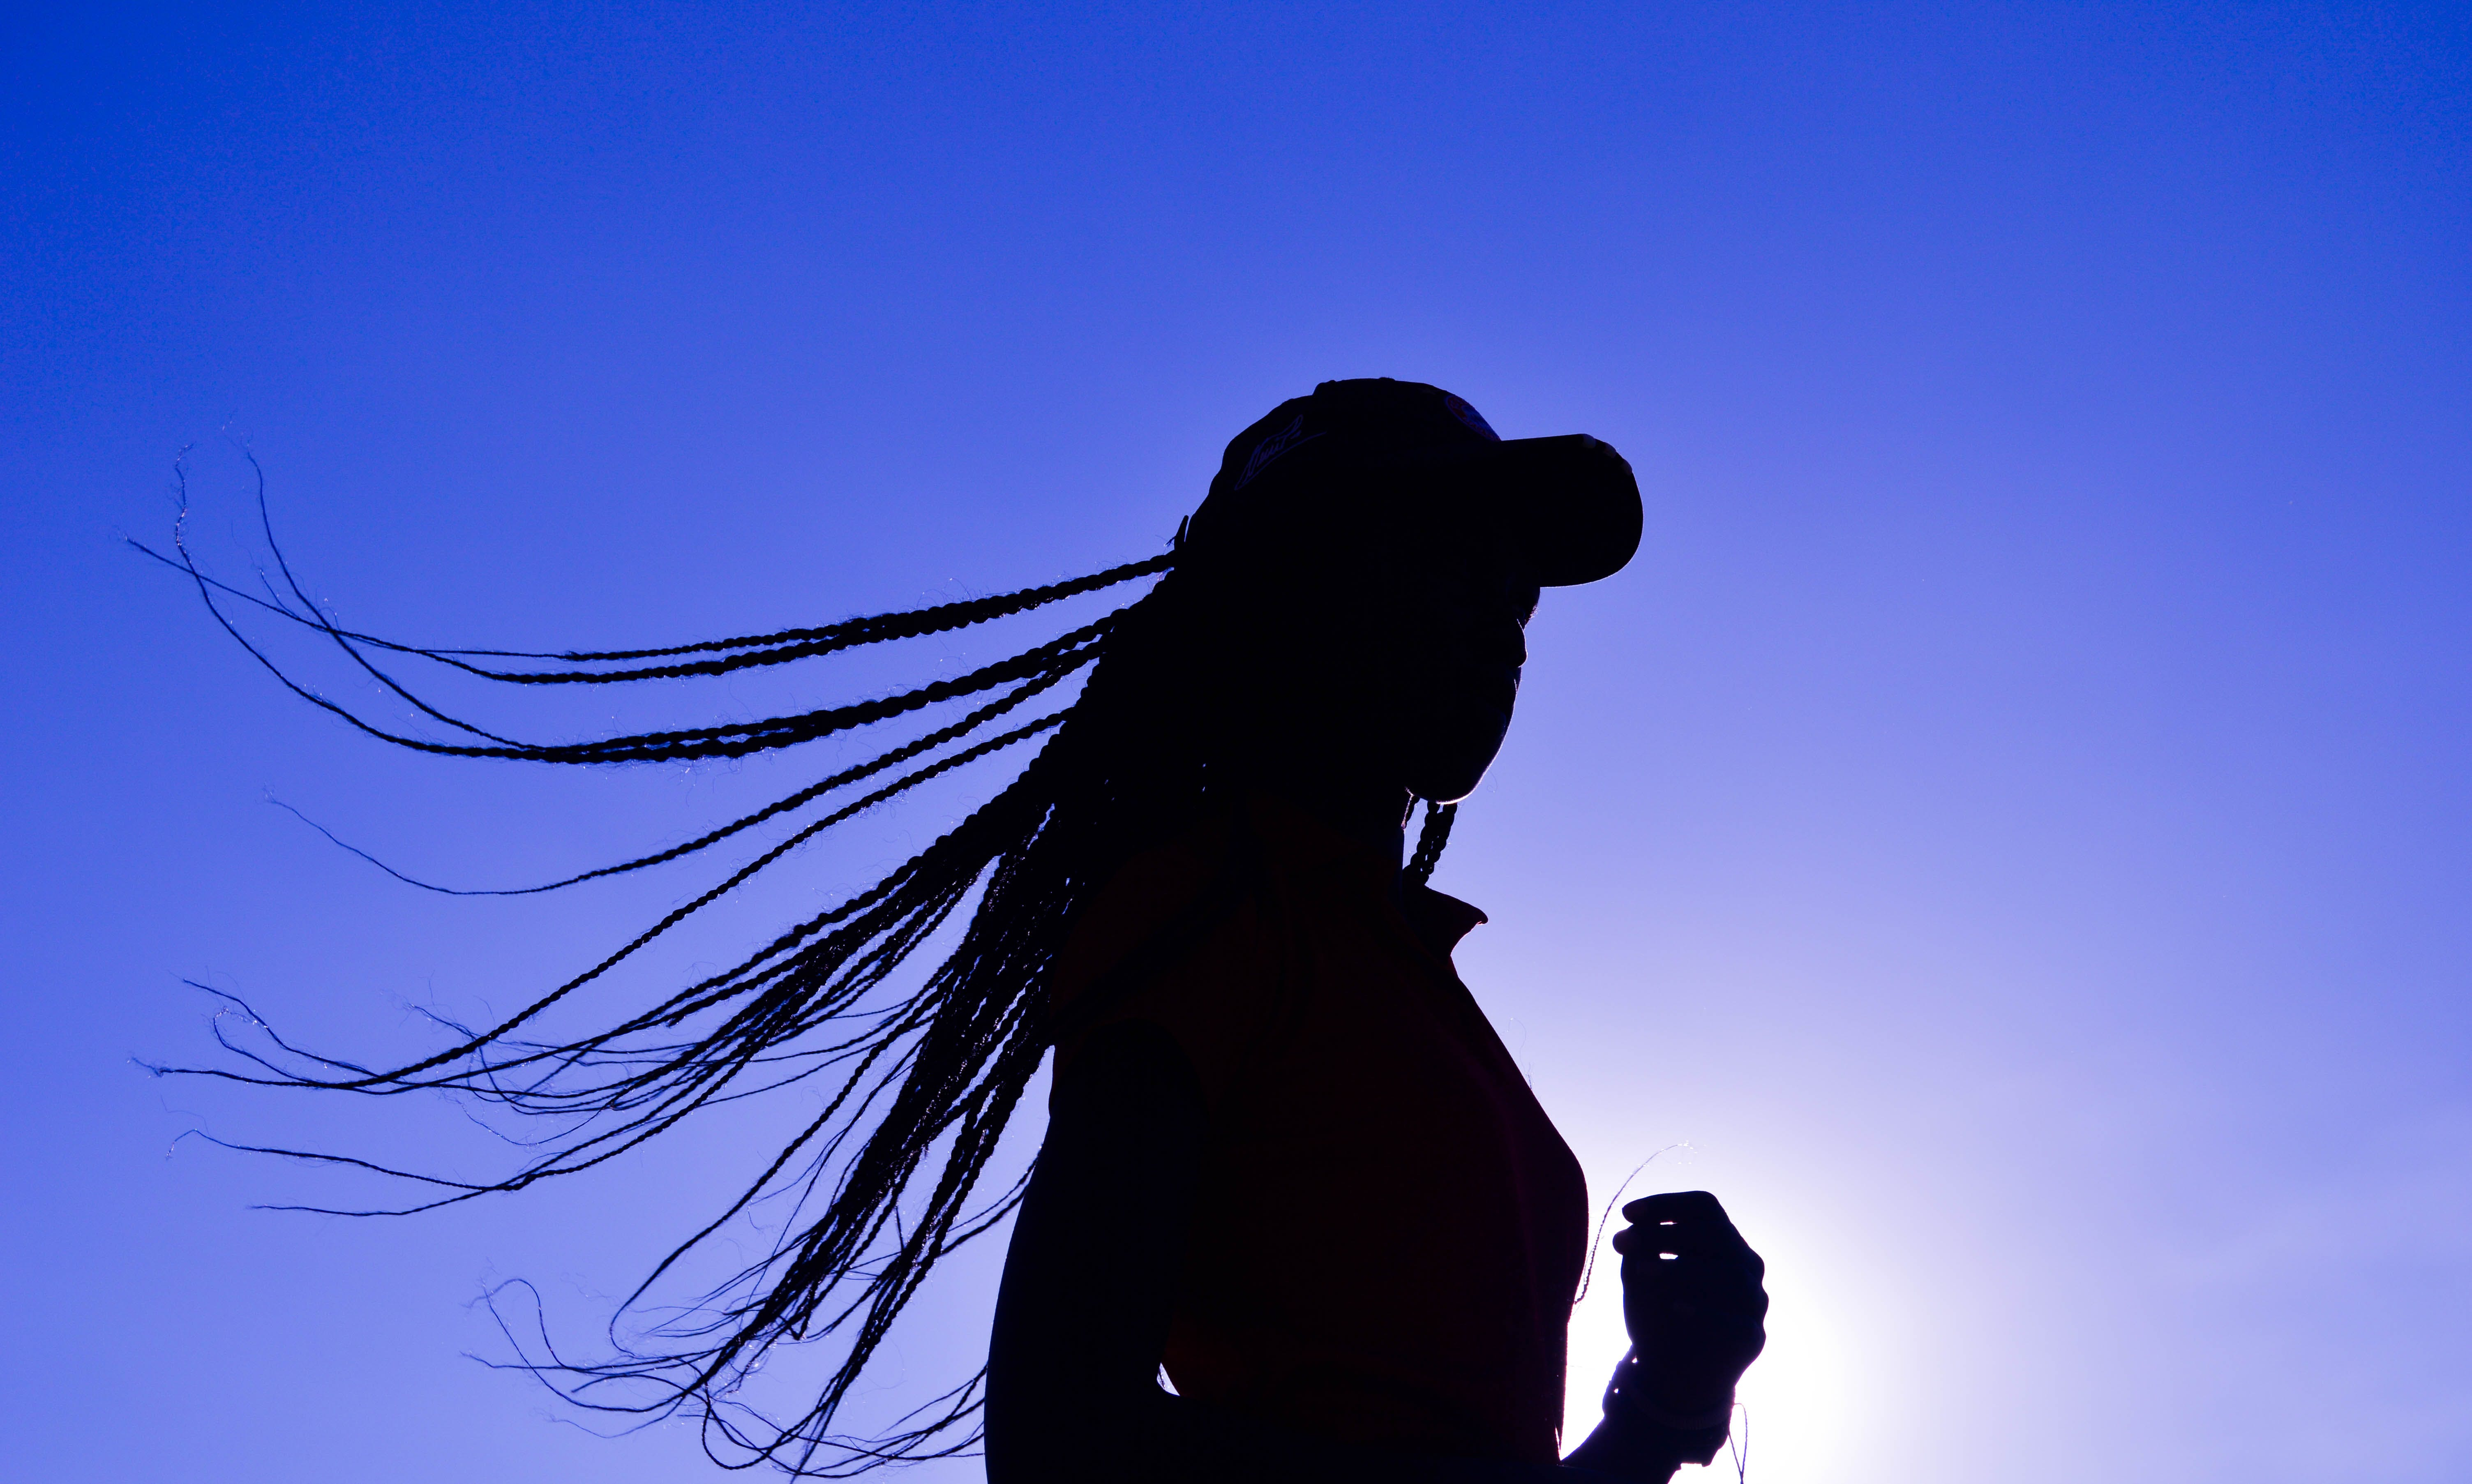 Silhouette of Woman Wearing Cap